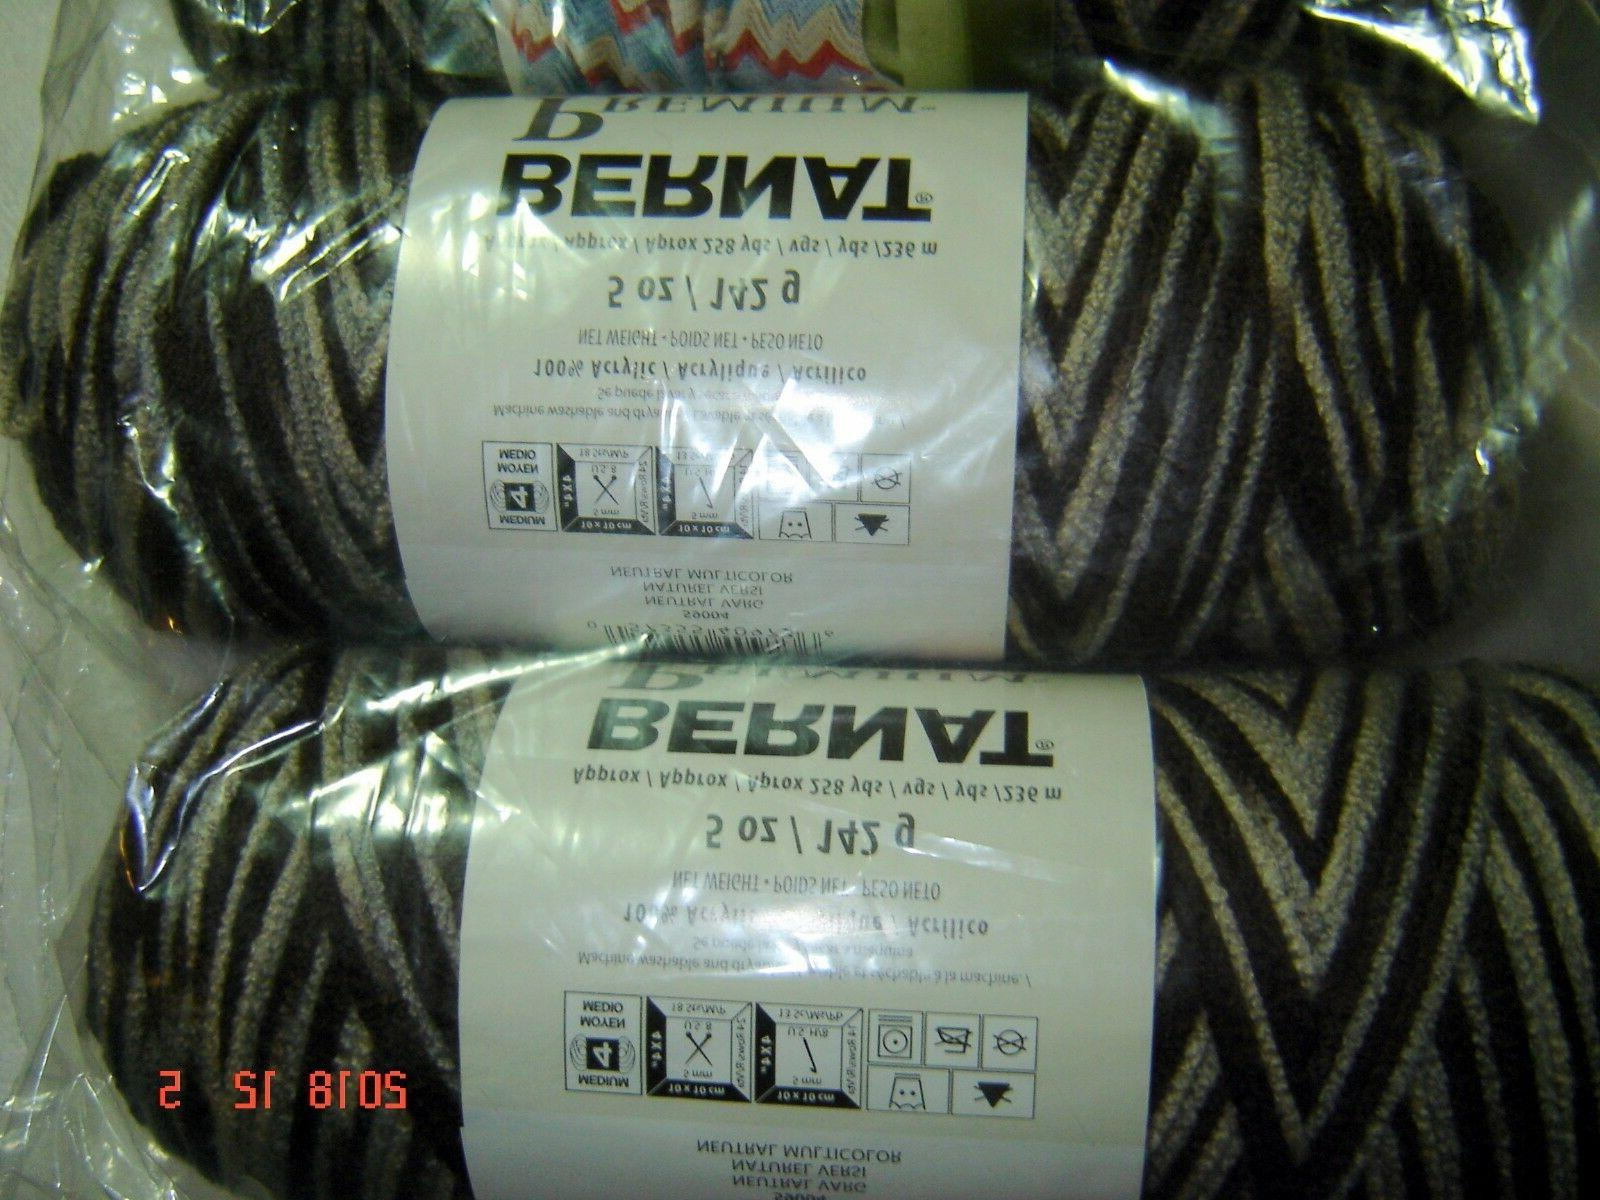 FREE Skeins of Bernat Premium Yarn in #59004